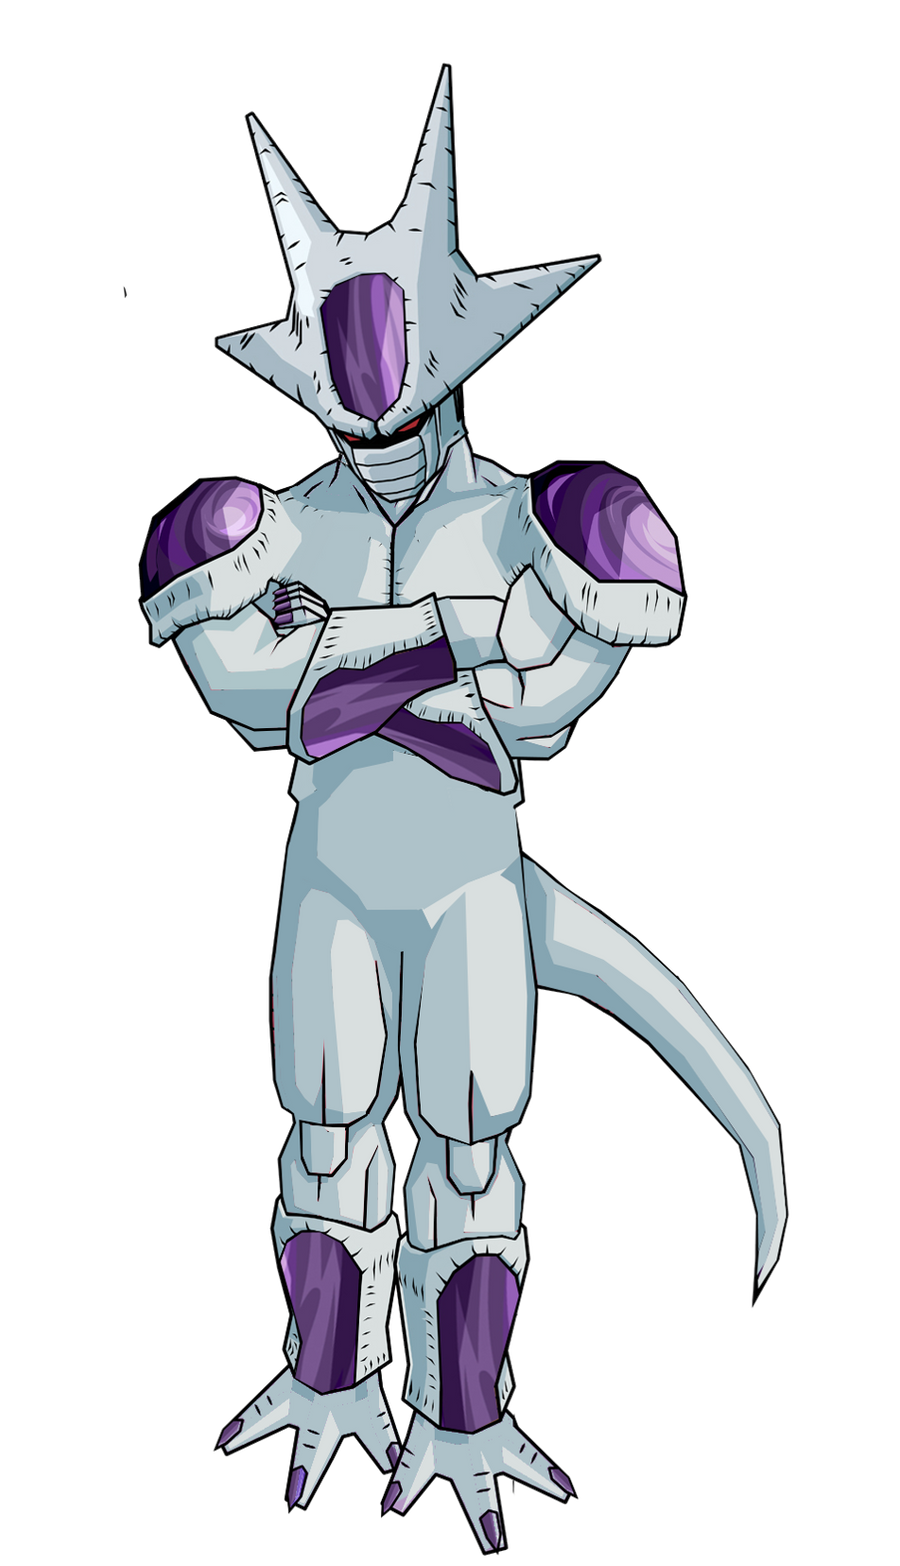 Frieza 3rd form by RobertoVile on DeviantArt